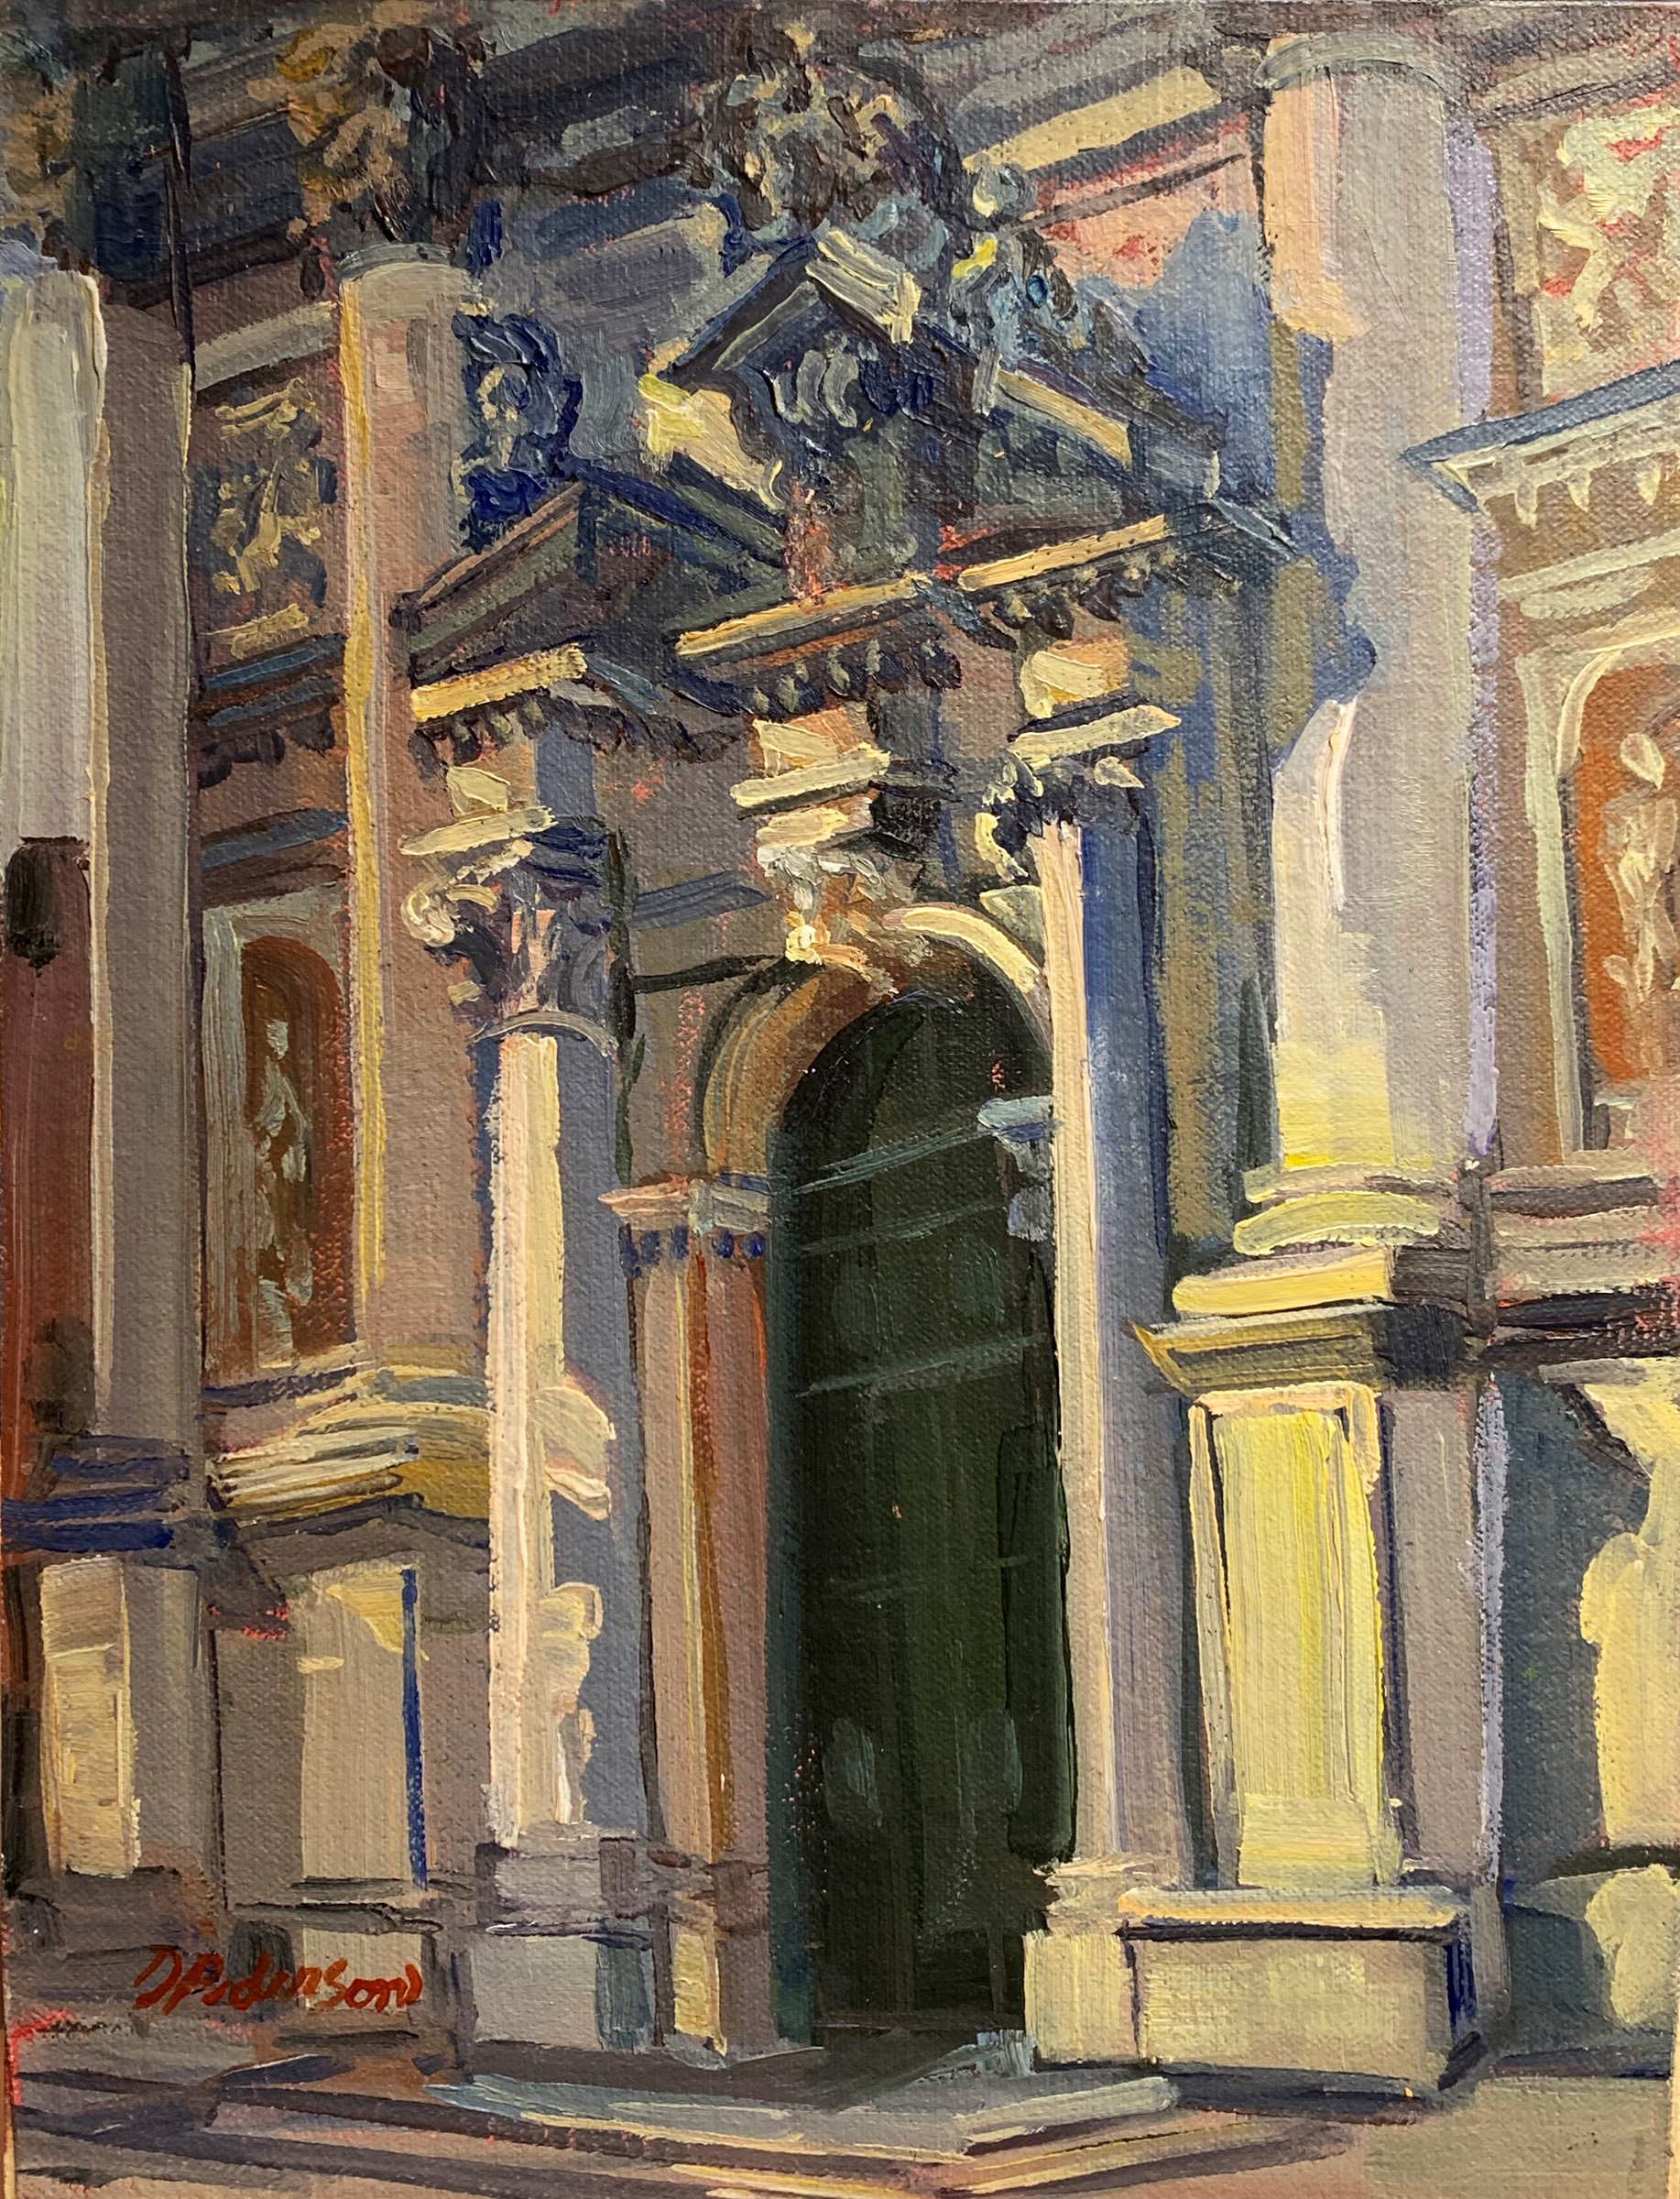 Church of St. Stae, V... by  Doloris Pederson - Masterpiece Online